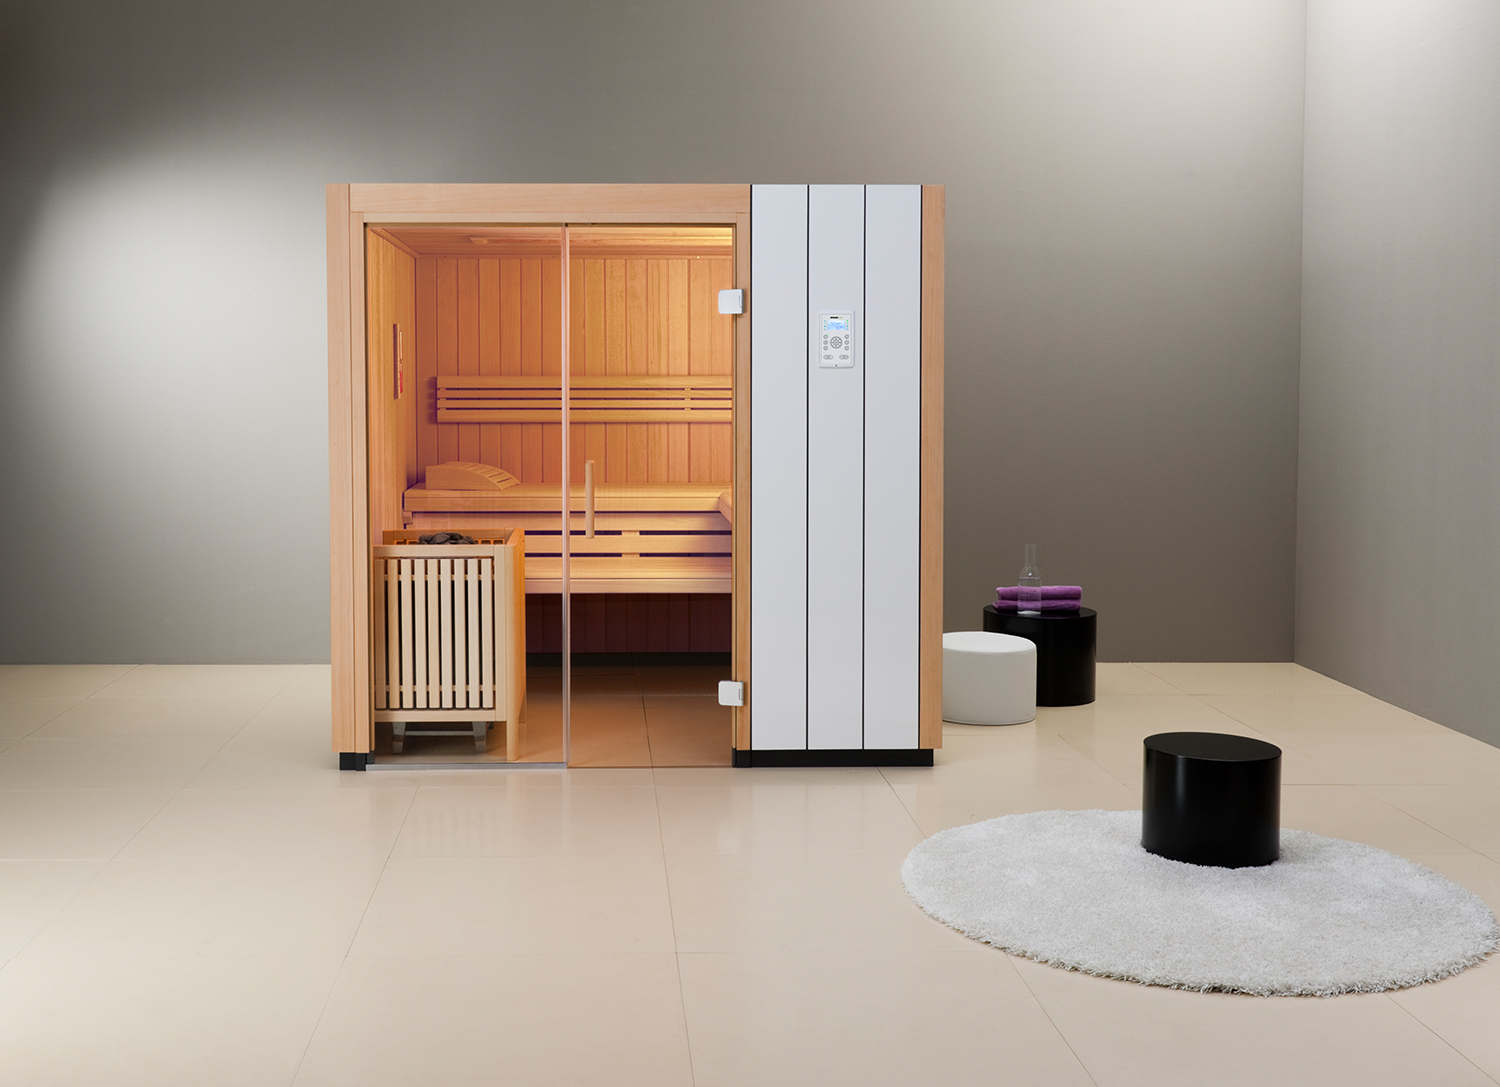 sauna infrarot bei feuerkultur. Black Bedroom Furniture Sets. Home Design Ideas